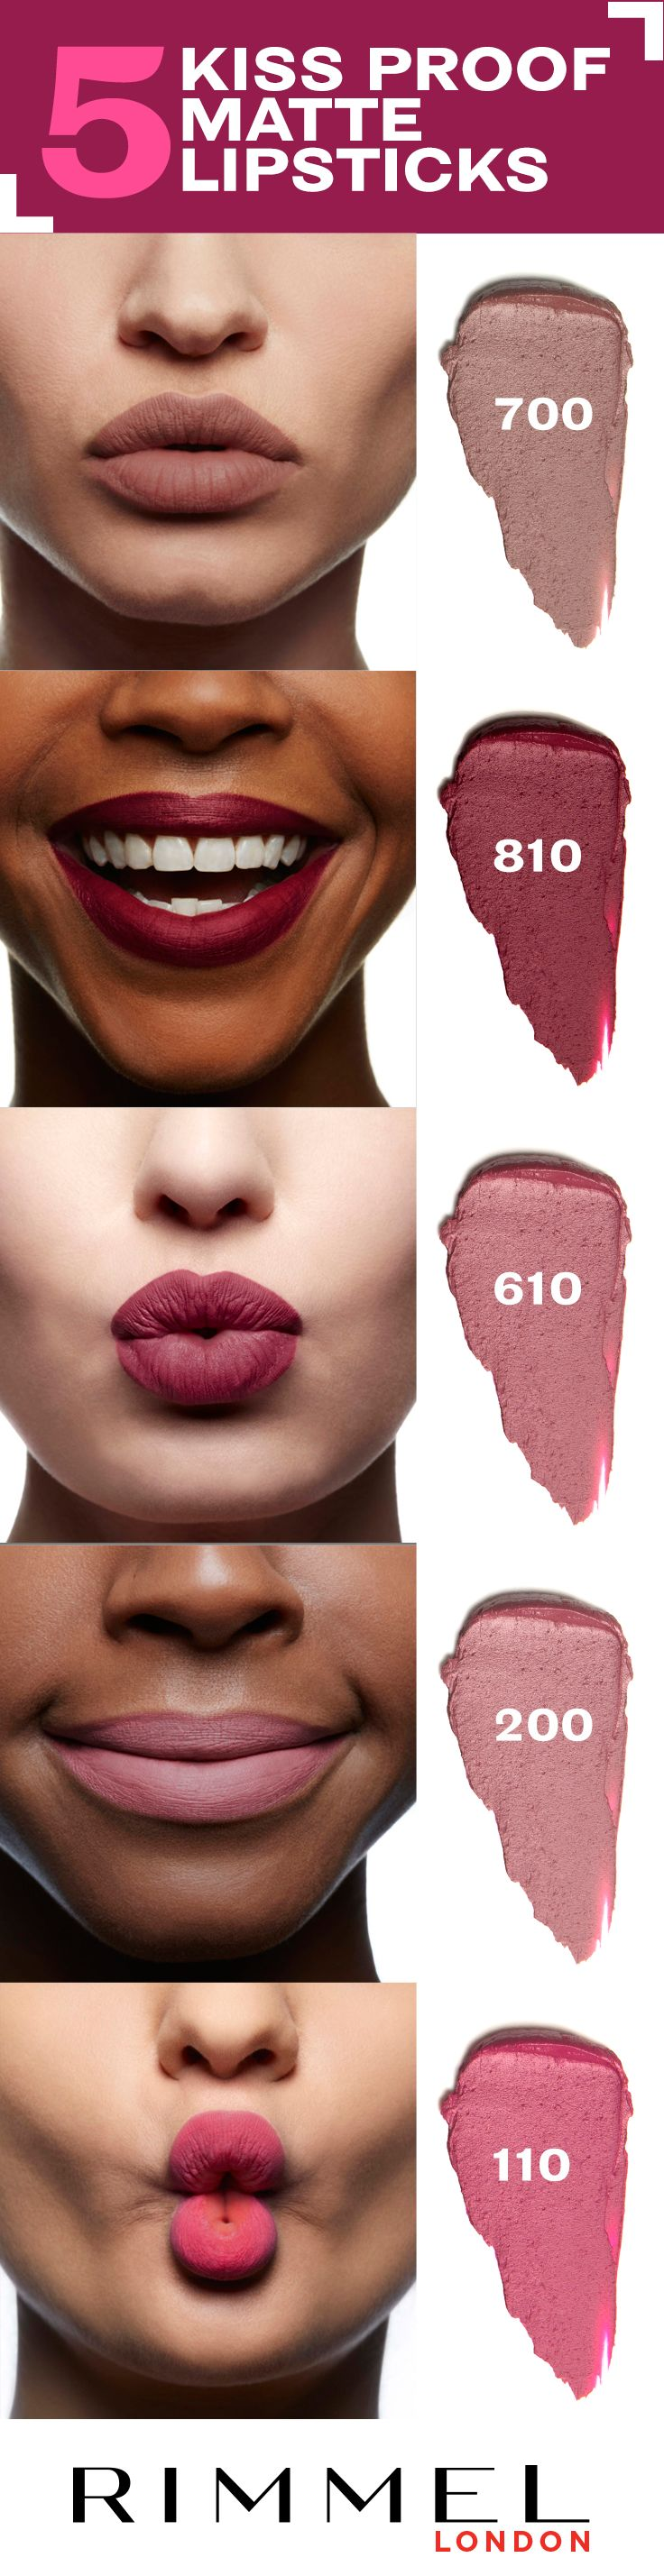 Been wanting to try matte lipstick? The Only 1 Matte collection from Rimmel London is available in 10 bold, beautiful shades, so you're sure to find the right lip colour for your skin tone.